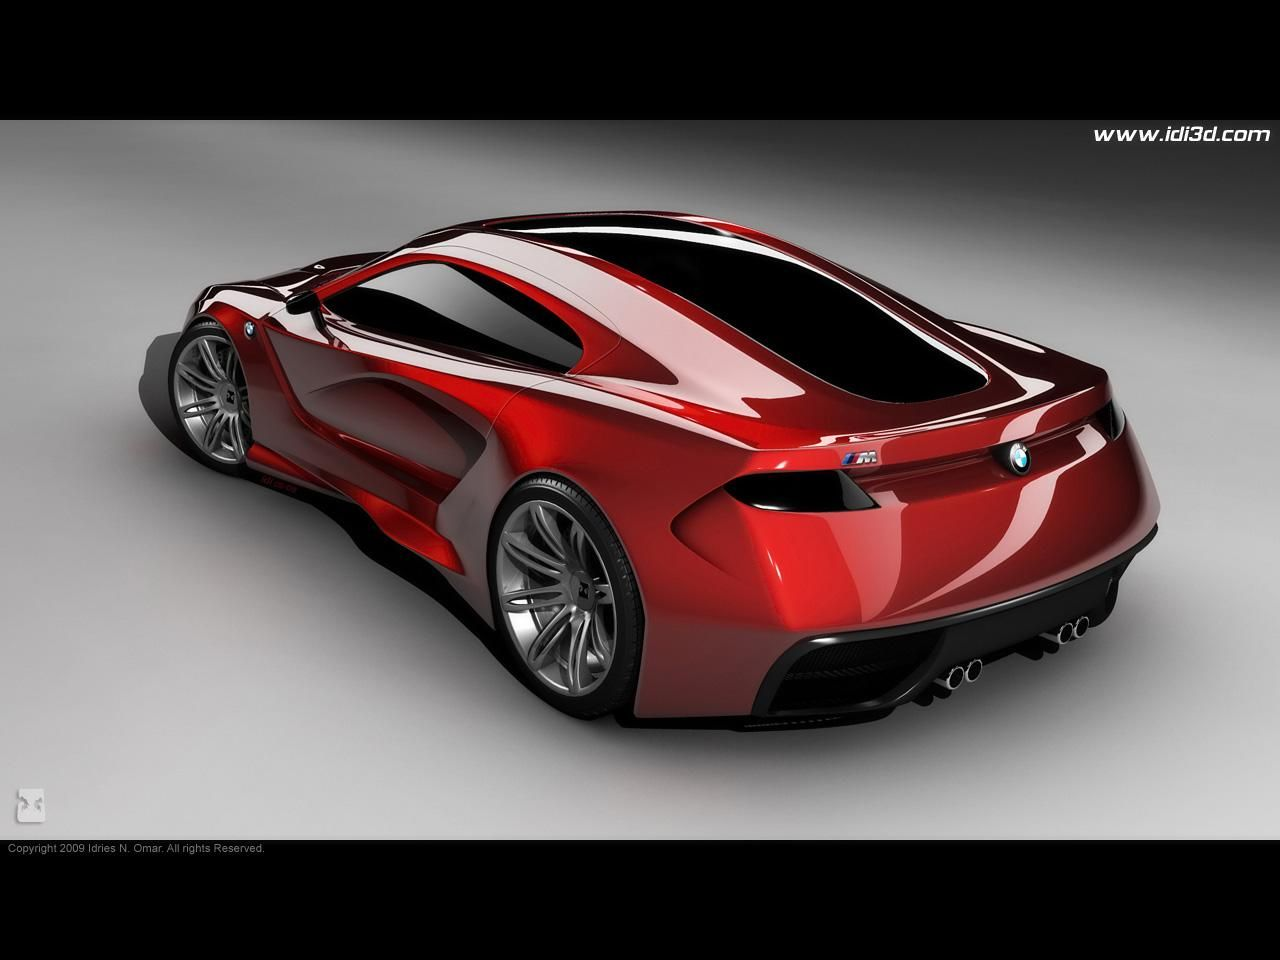 Bmw Announces New Supercar Will Be Called Bmw M9 Bmw Concept Concept Cars Super Cars